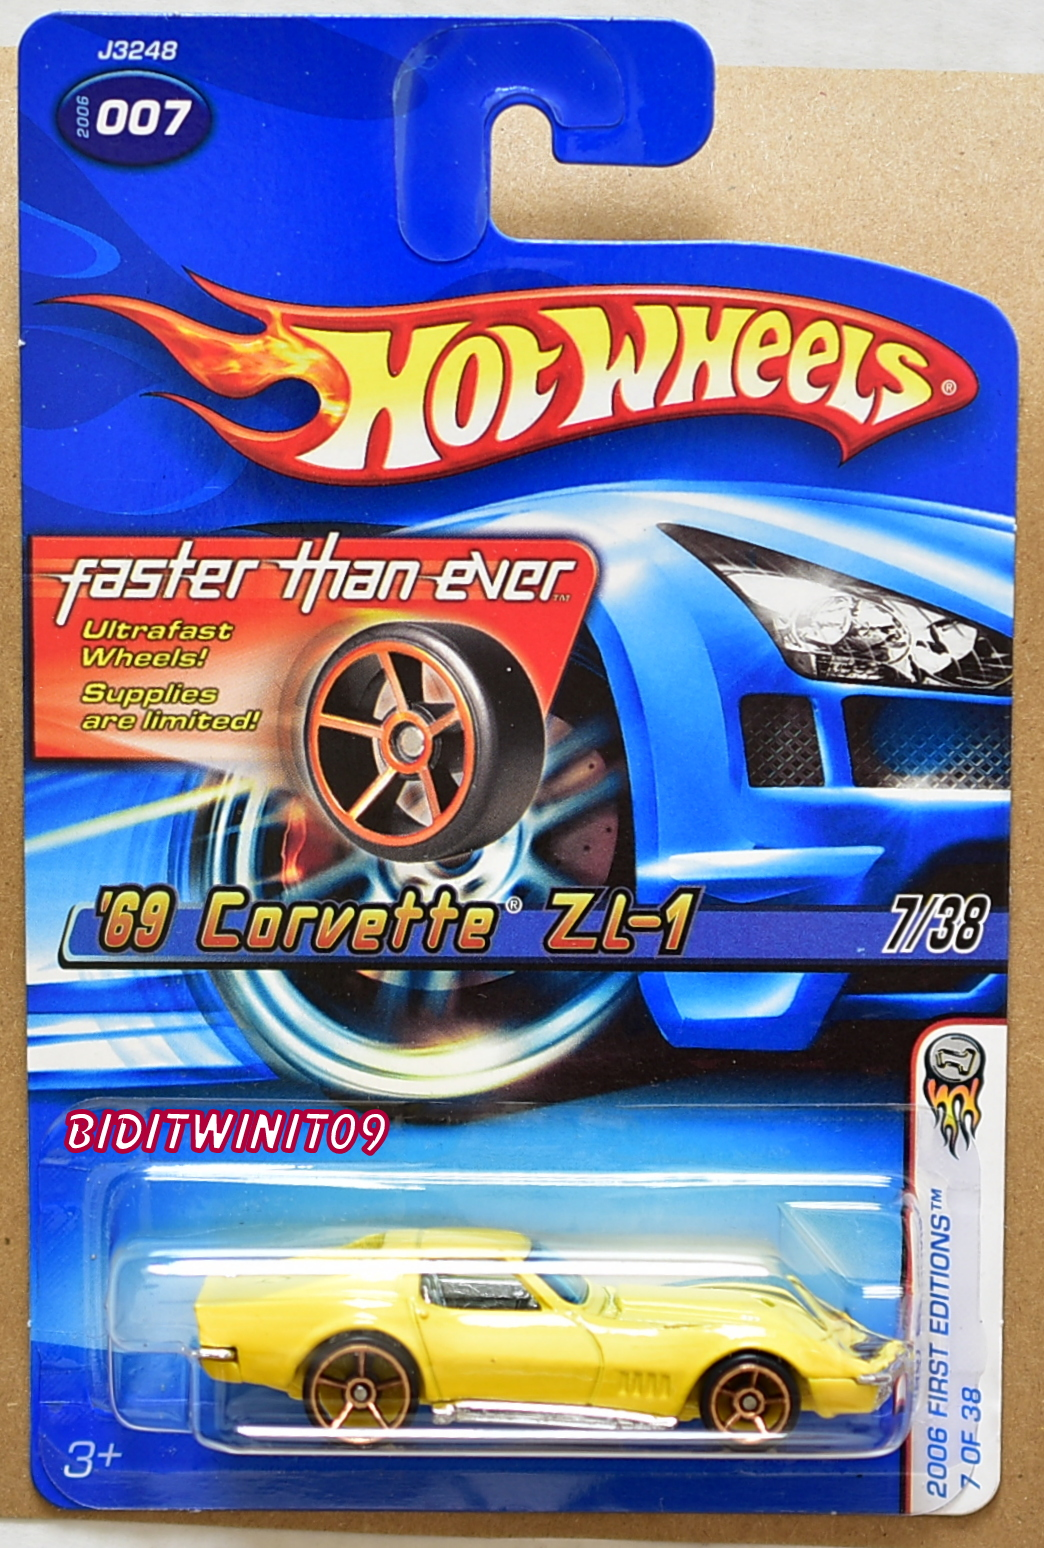 HOT WHEELS 2006 FTE FIRST EDITIONS '69 CORVETTE ZL-1 #007 YELLOW